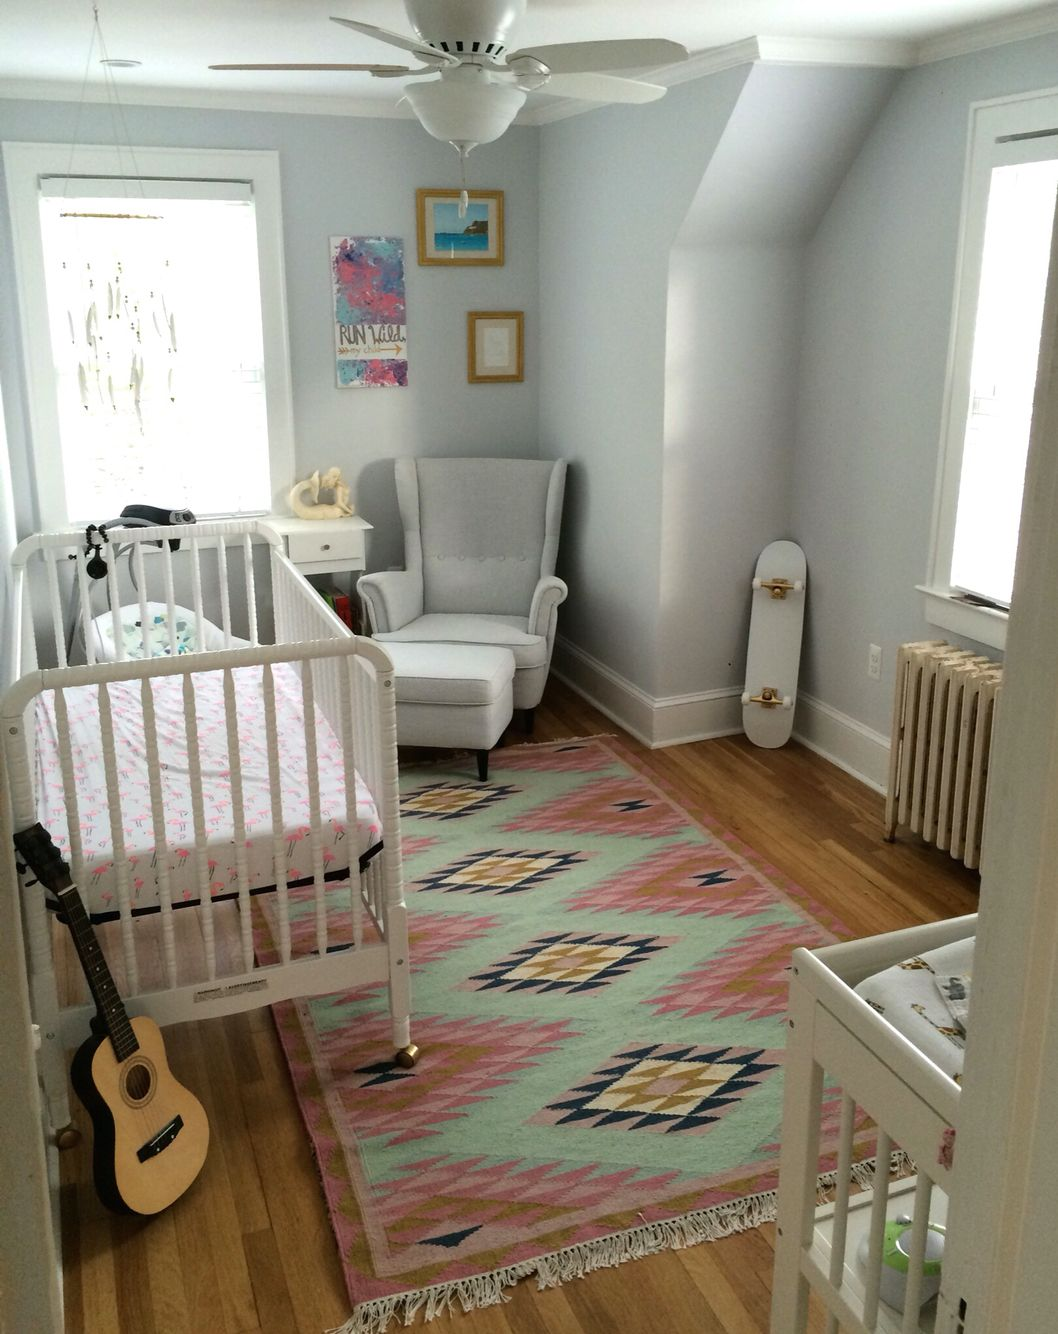 refreshed this old house to create a neverland nursery for our